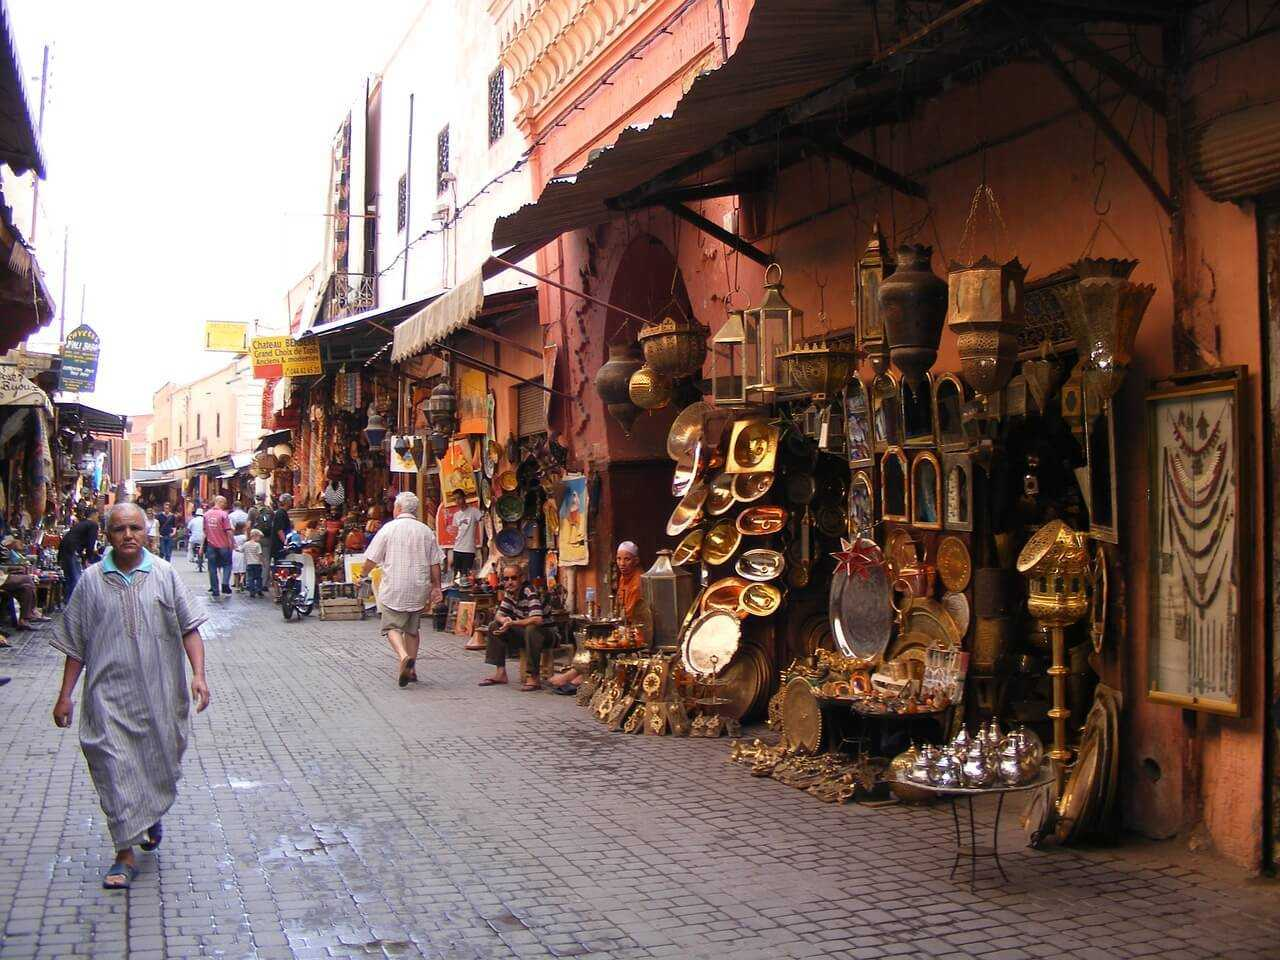 Things to do in Marrakech - Old Medina Souks marrakesh